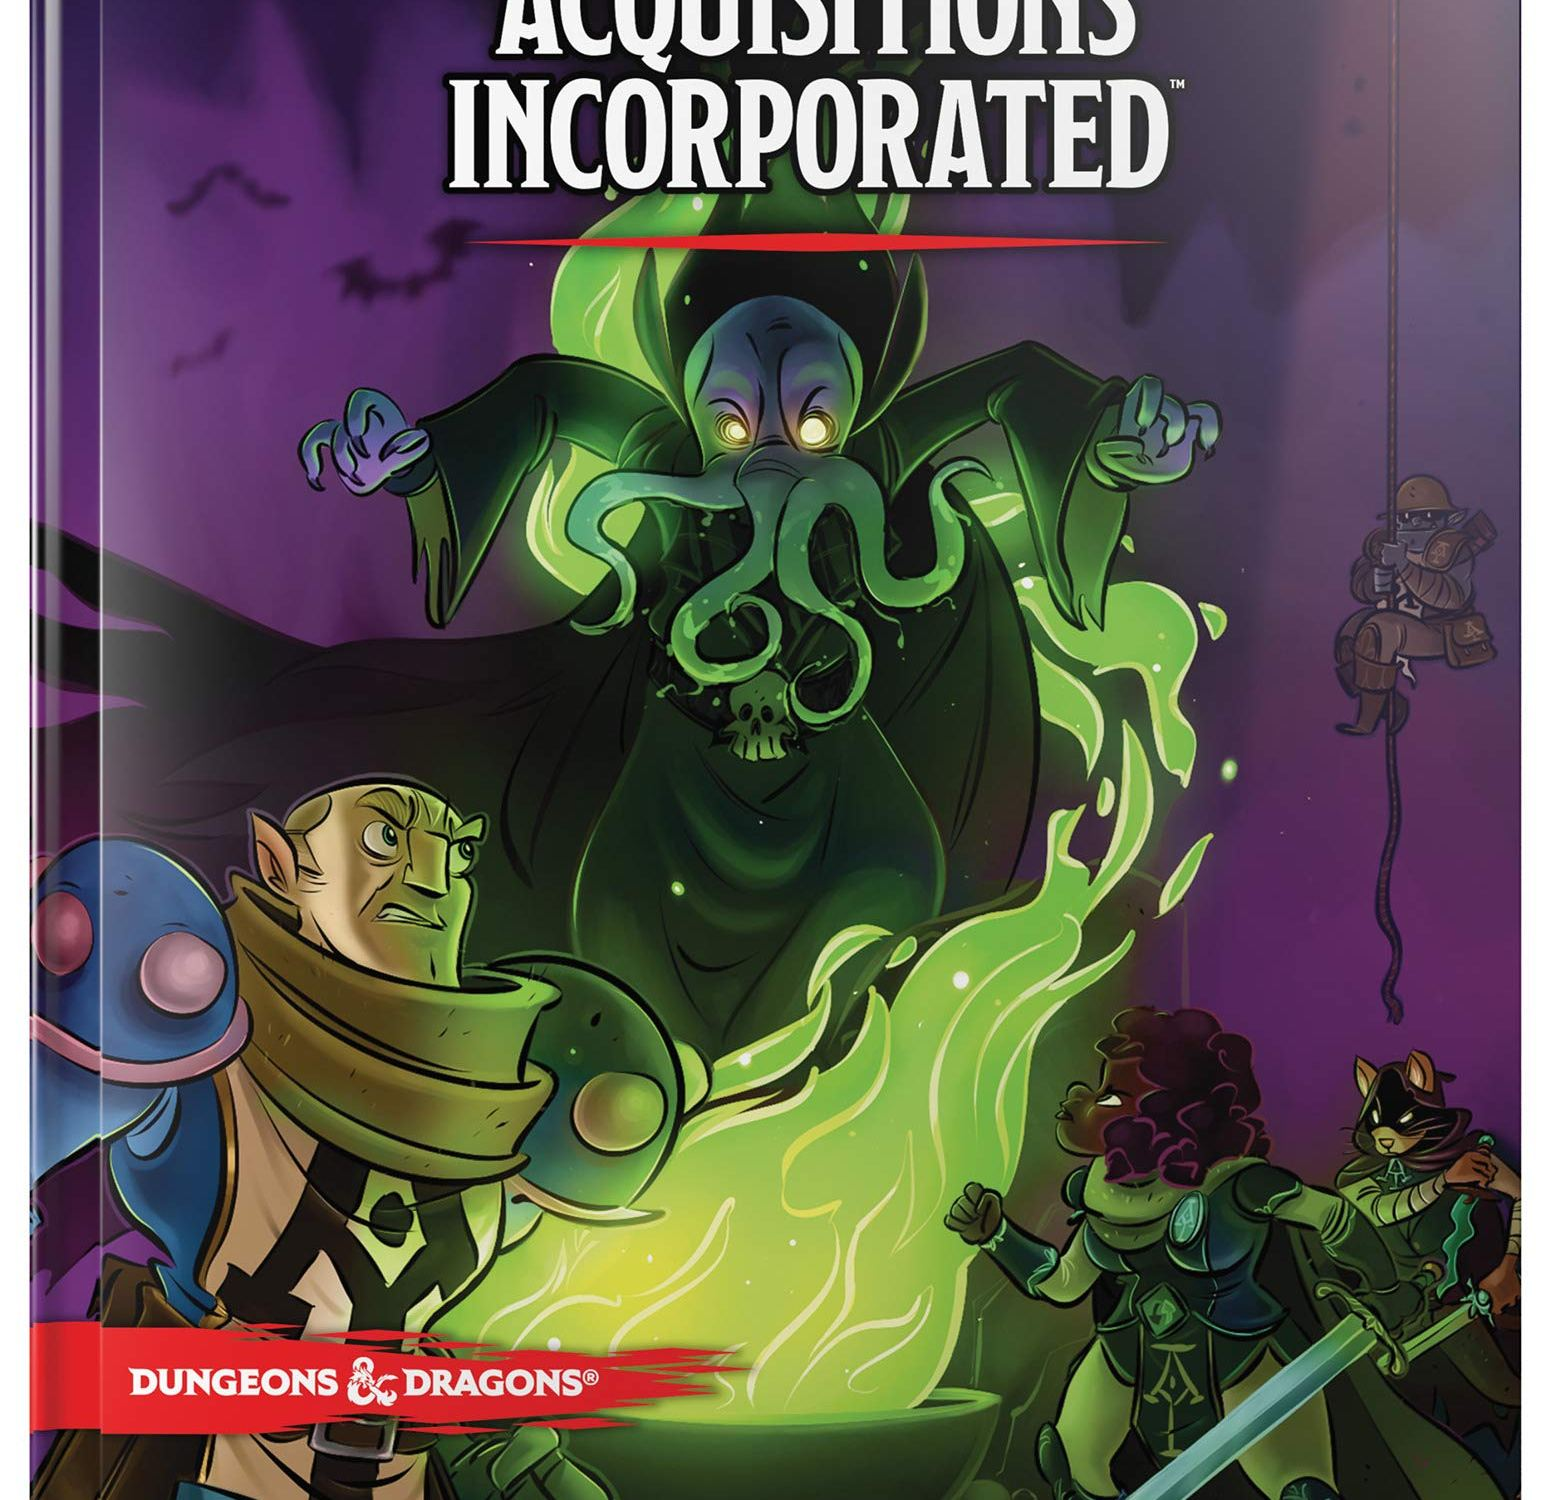 Review – Acquisitions Incorporated (Dungeons & Dragons